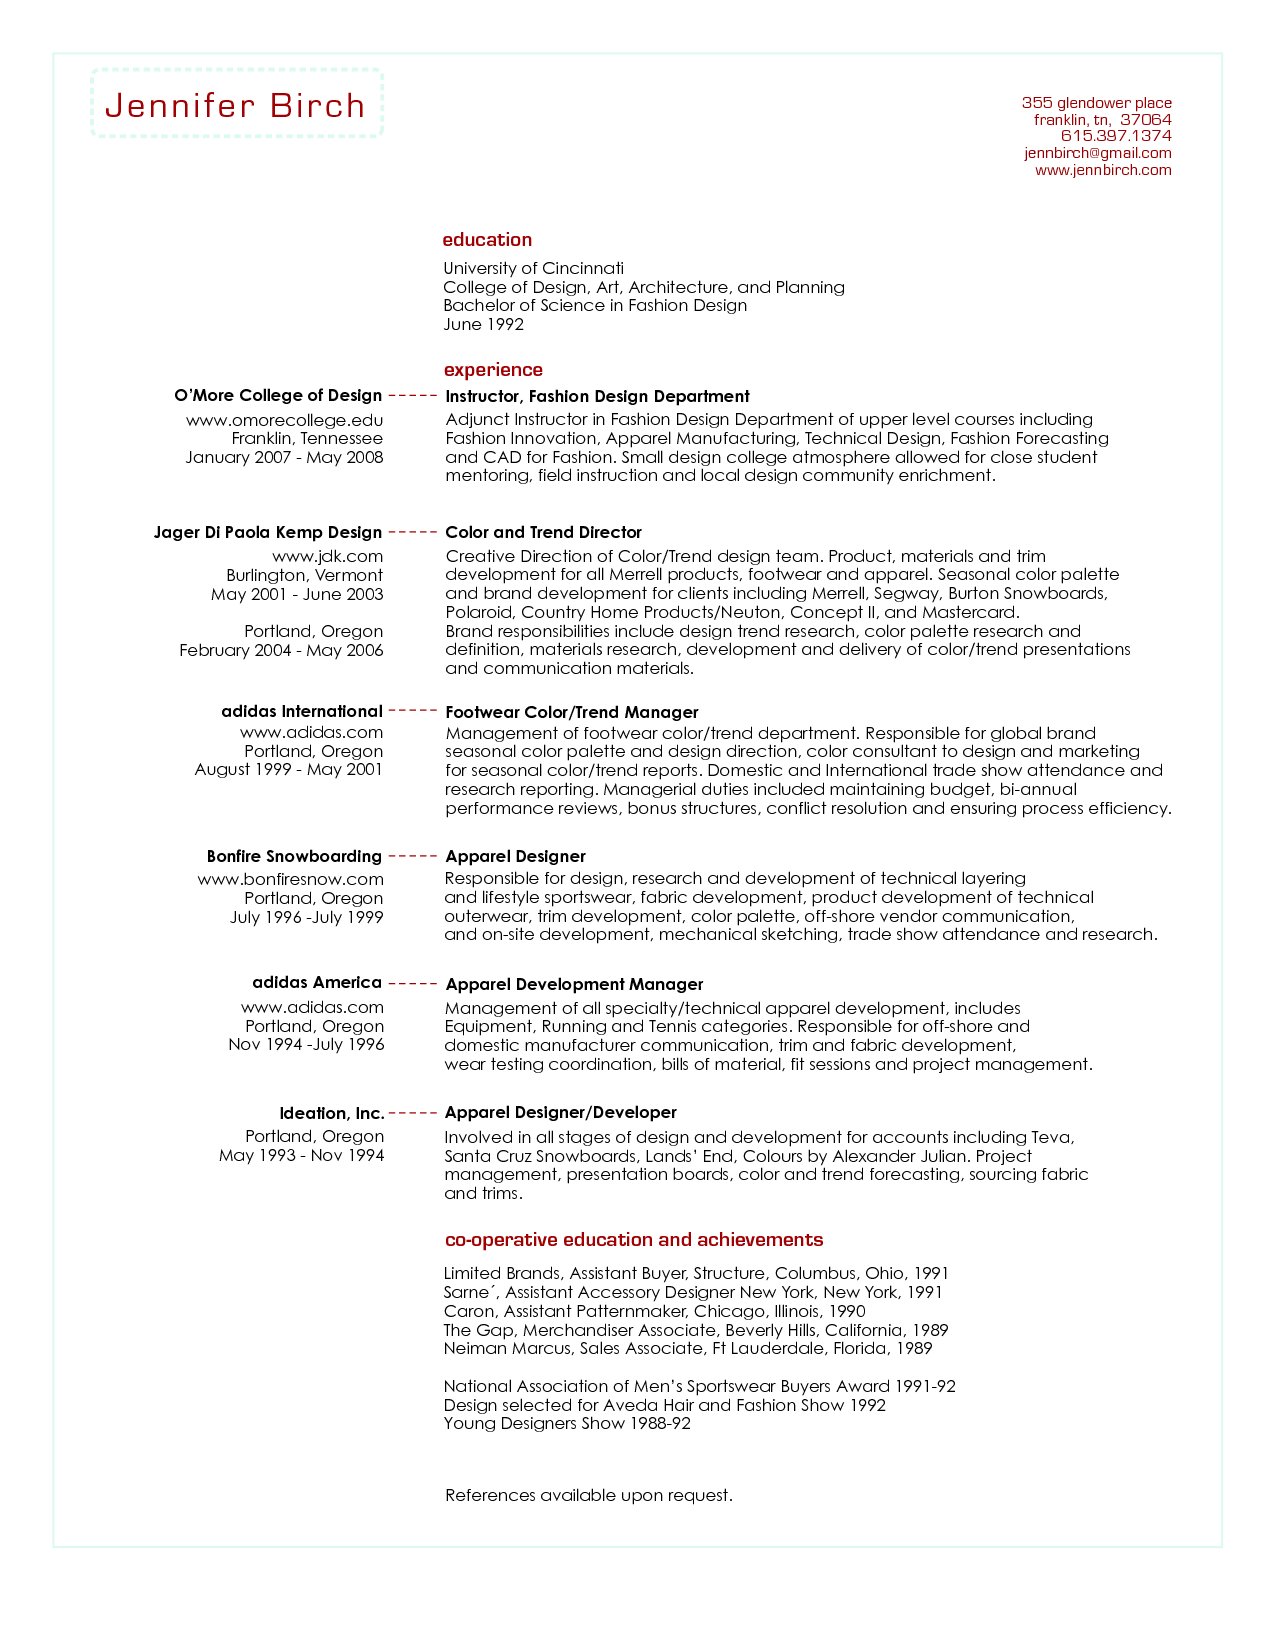 Teacher Resume Template Download - Junior Fashion Er Resume Skills Google Search